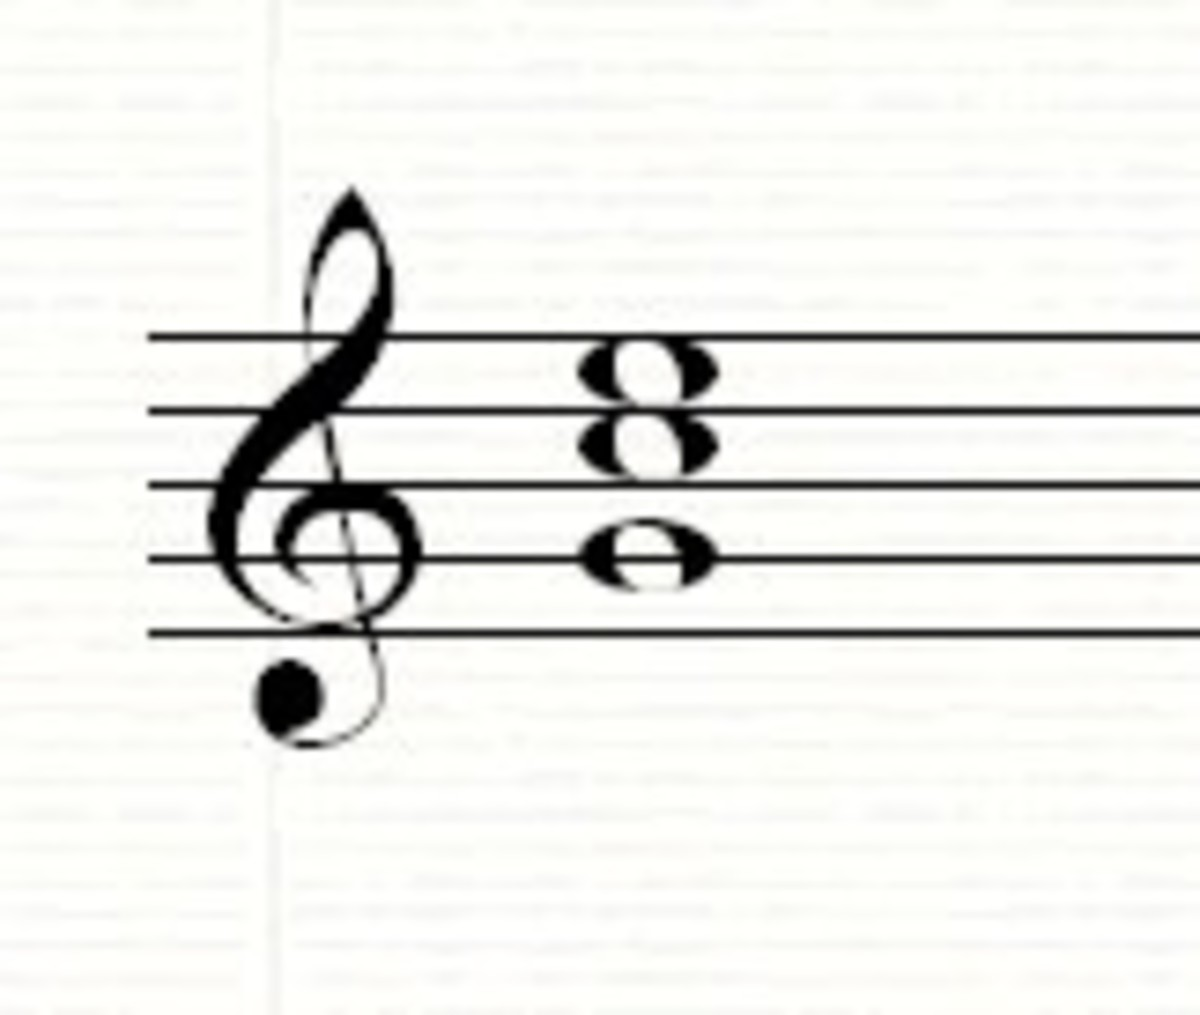 The C chord in 2nd inversion (bottom note G)